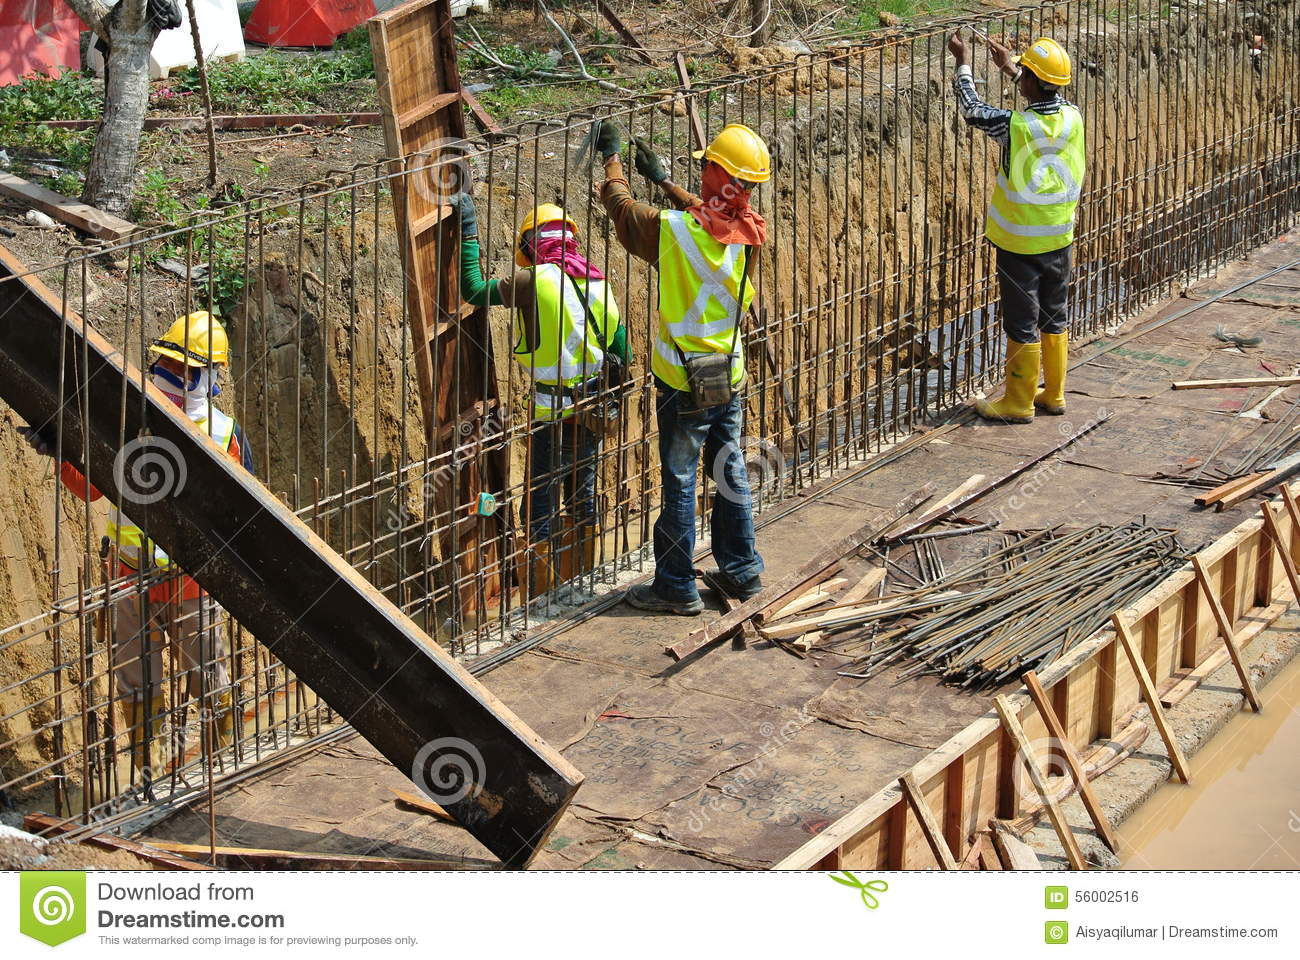 Construction of retaining walls: an overview of the types of structures and materials 57